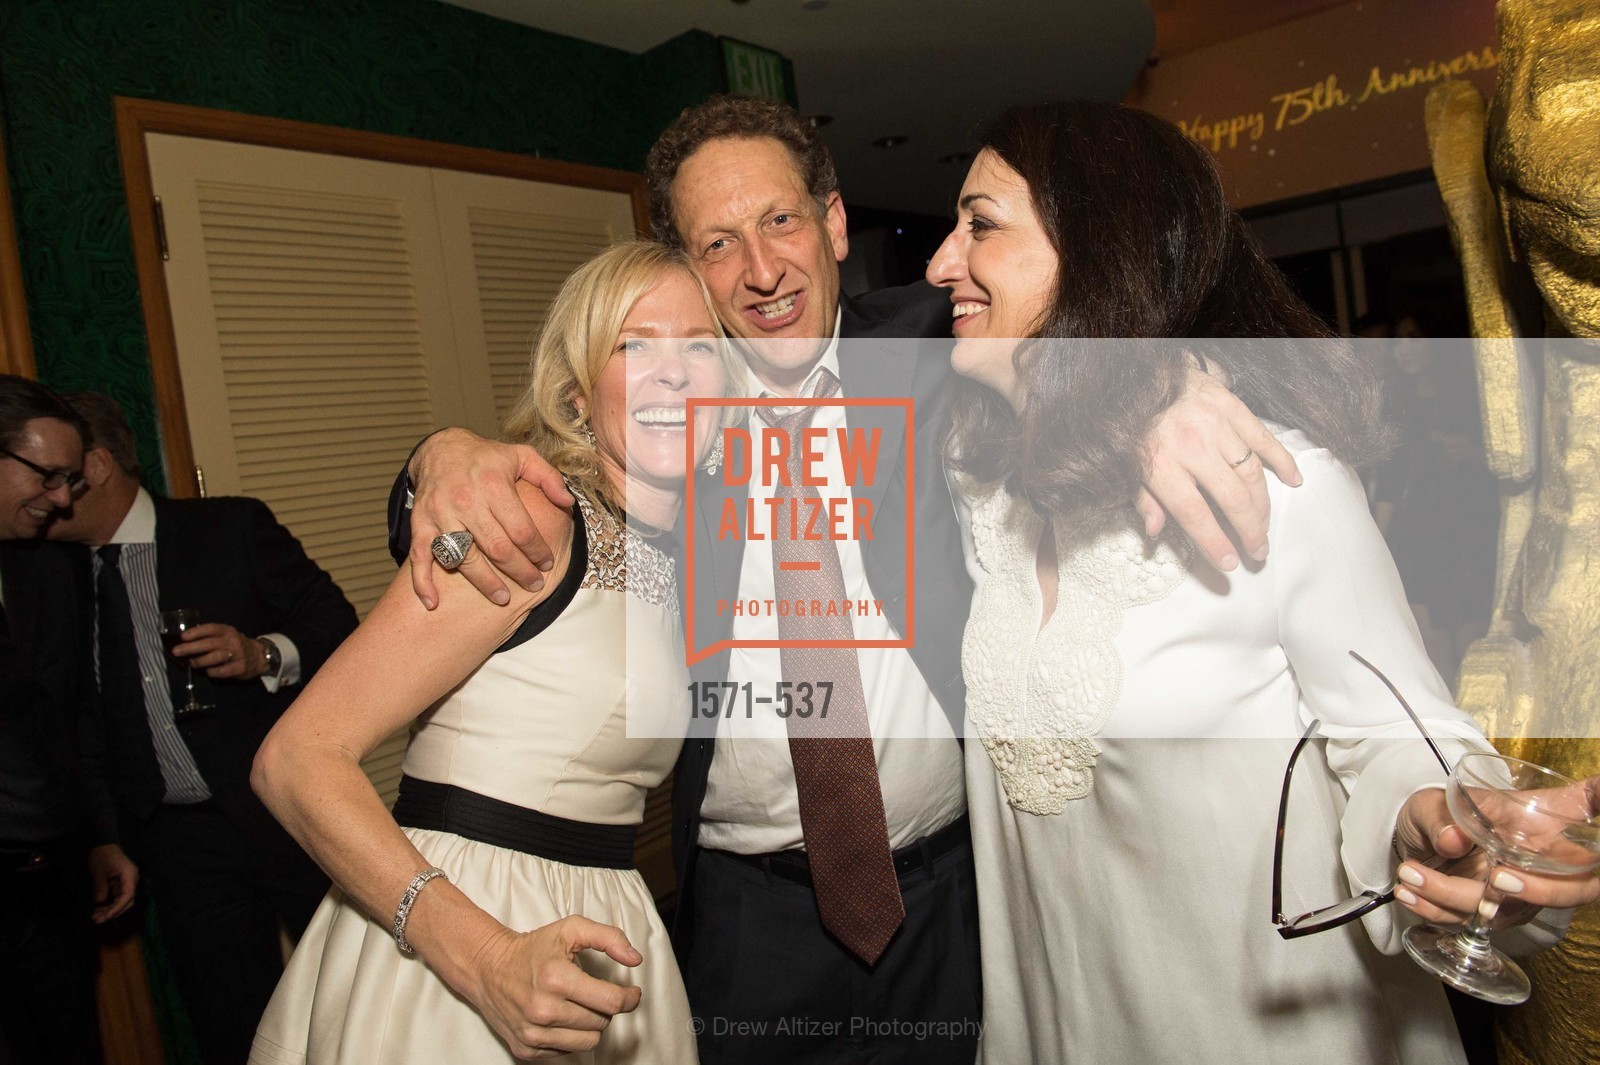 Kerri Lehmann, Larry Baer, Pam Baer, TOP OF THE MARK'S 75TH Anniversary Party, US, November 7th, 2014,Drew Altizer, Drew Altizer Photography, full-service agency, private events, San Francisco photographer, photographer california